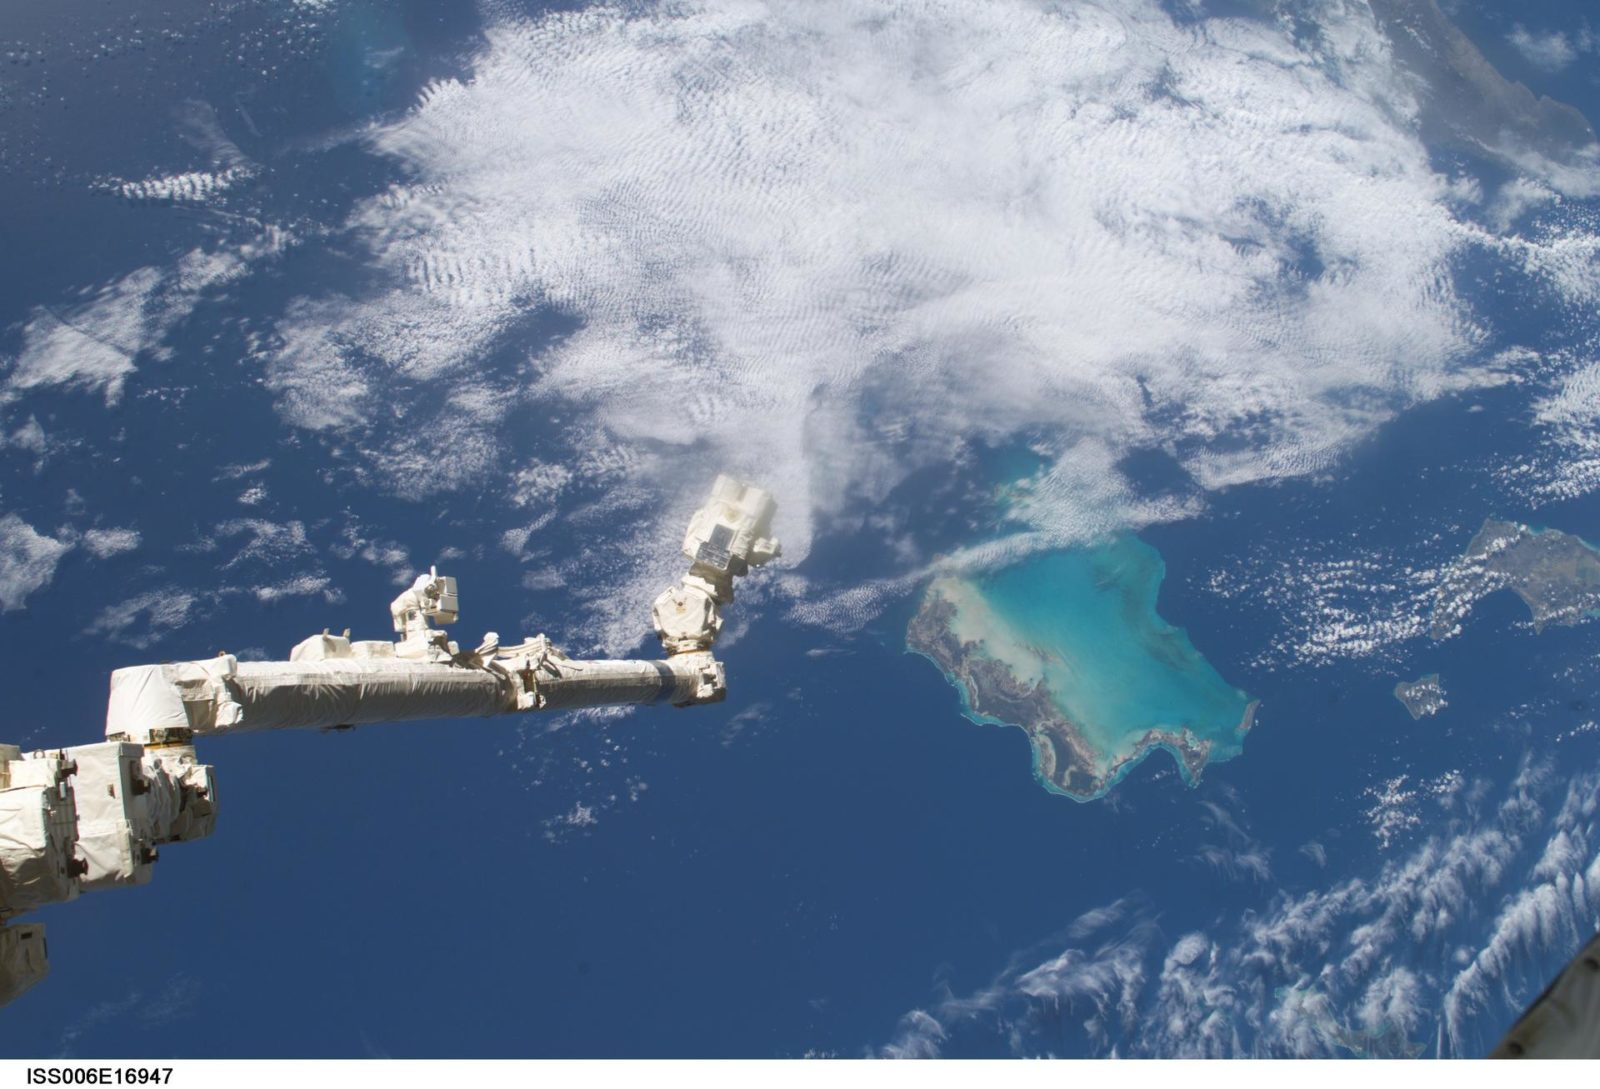 View of the extended SSRMS or Canadarm2 with cloudy view in the background